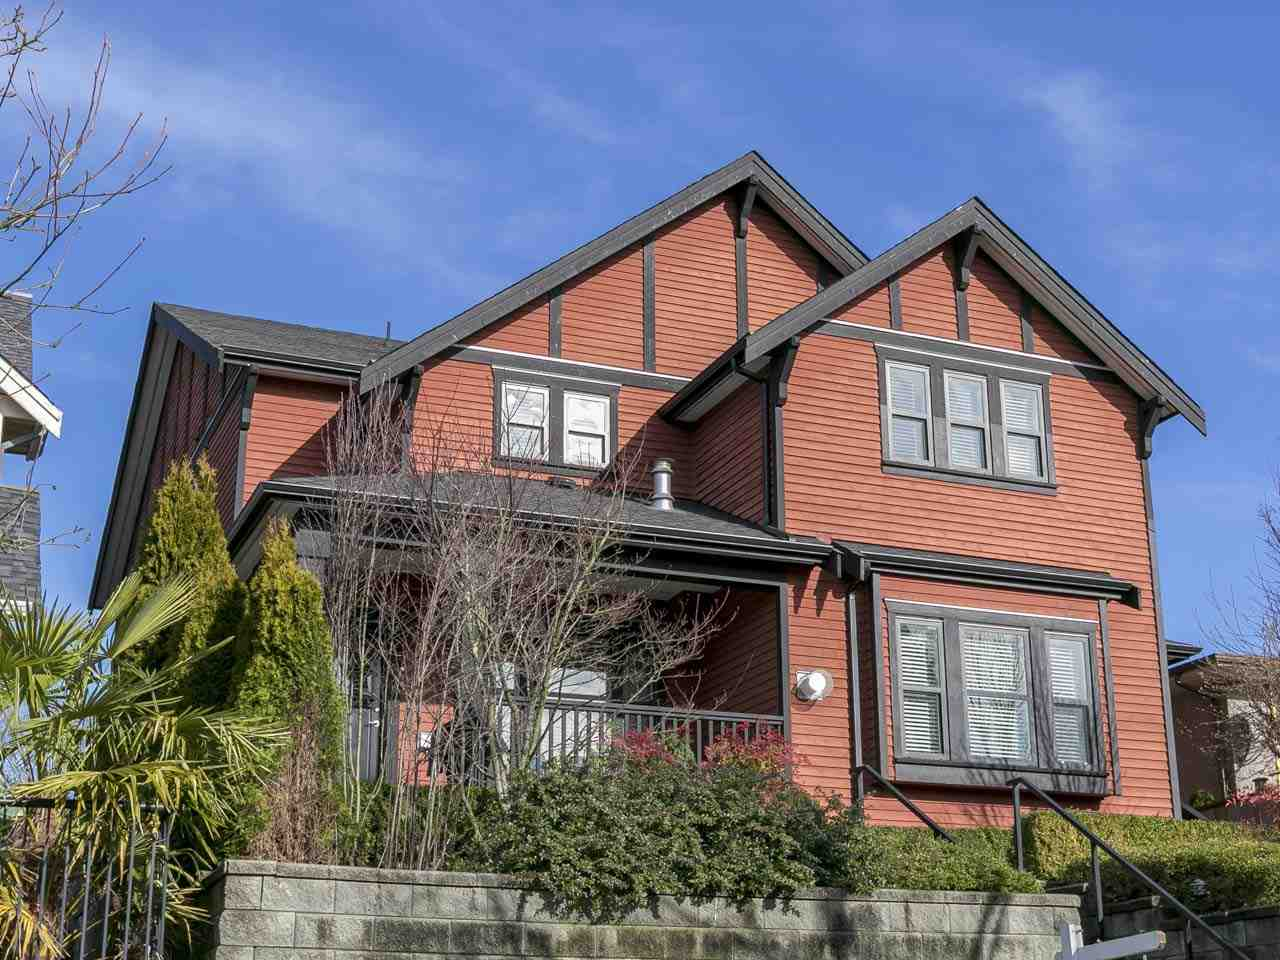 Main Photo: 2025 E 10TH AVENUE in Vancouver: Grandview VE House 1/2 Duplex for sale (Vancouver East)  : MLS®# R2247203